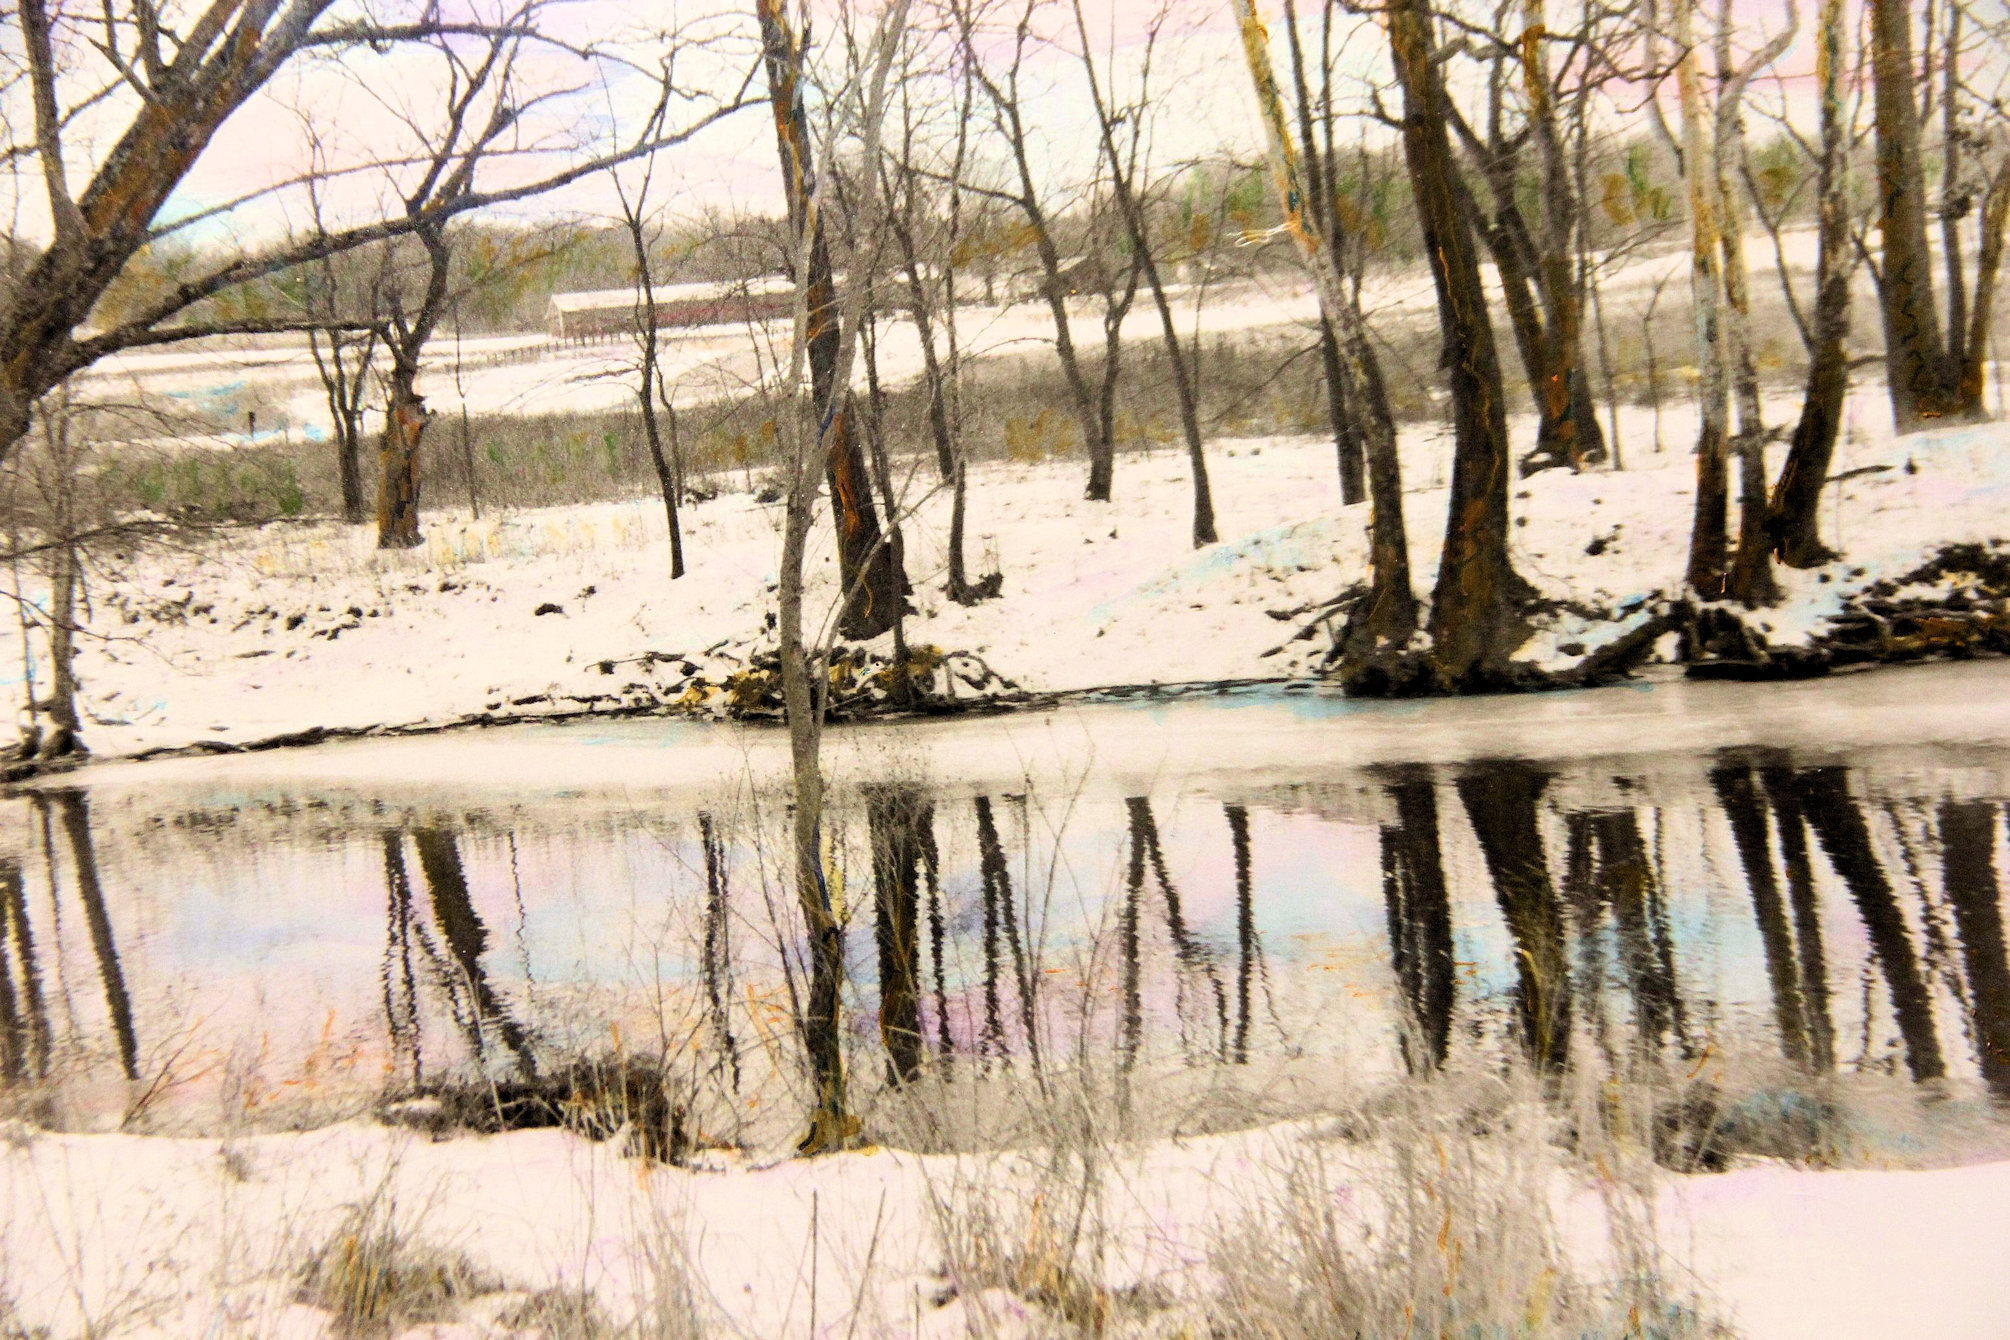 """""""Parklands of Floyd's Fork in Winter"""" by Judy Rosati, 16x20in, hand colored silver gelatin photograph (2015)"""